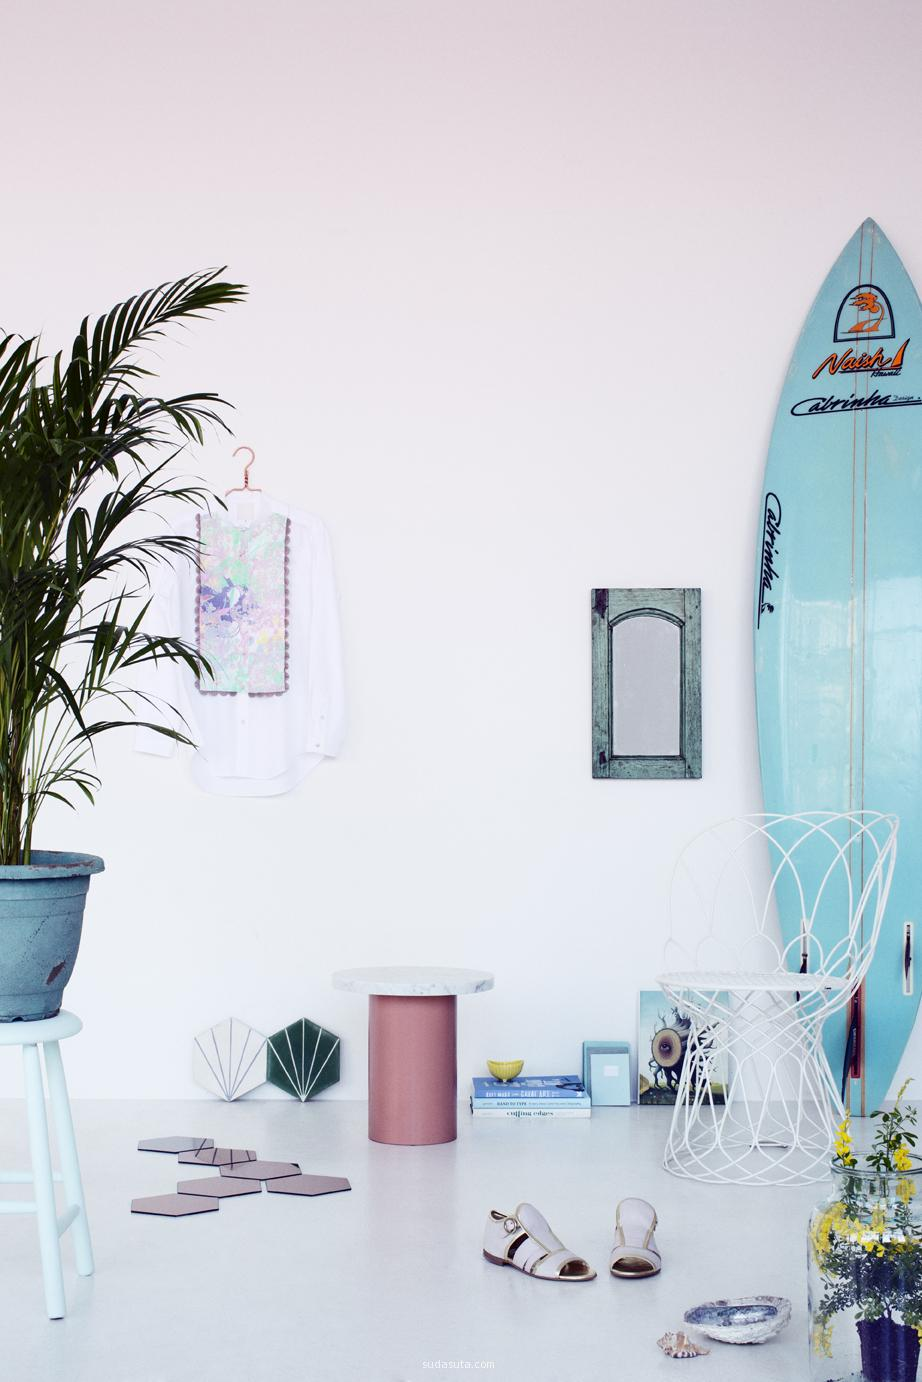 How To Paint A Surfboard For Decoration